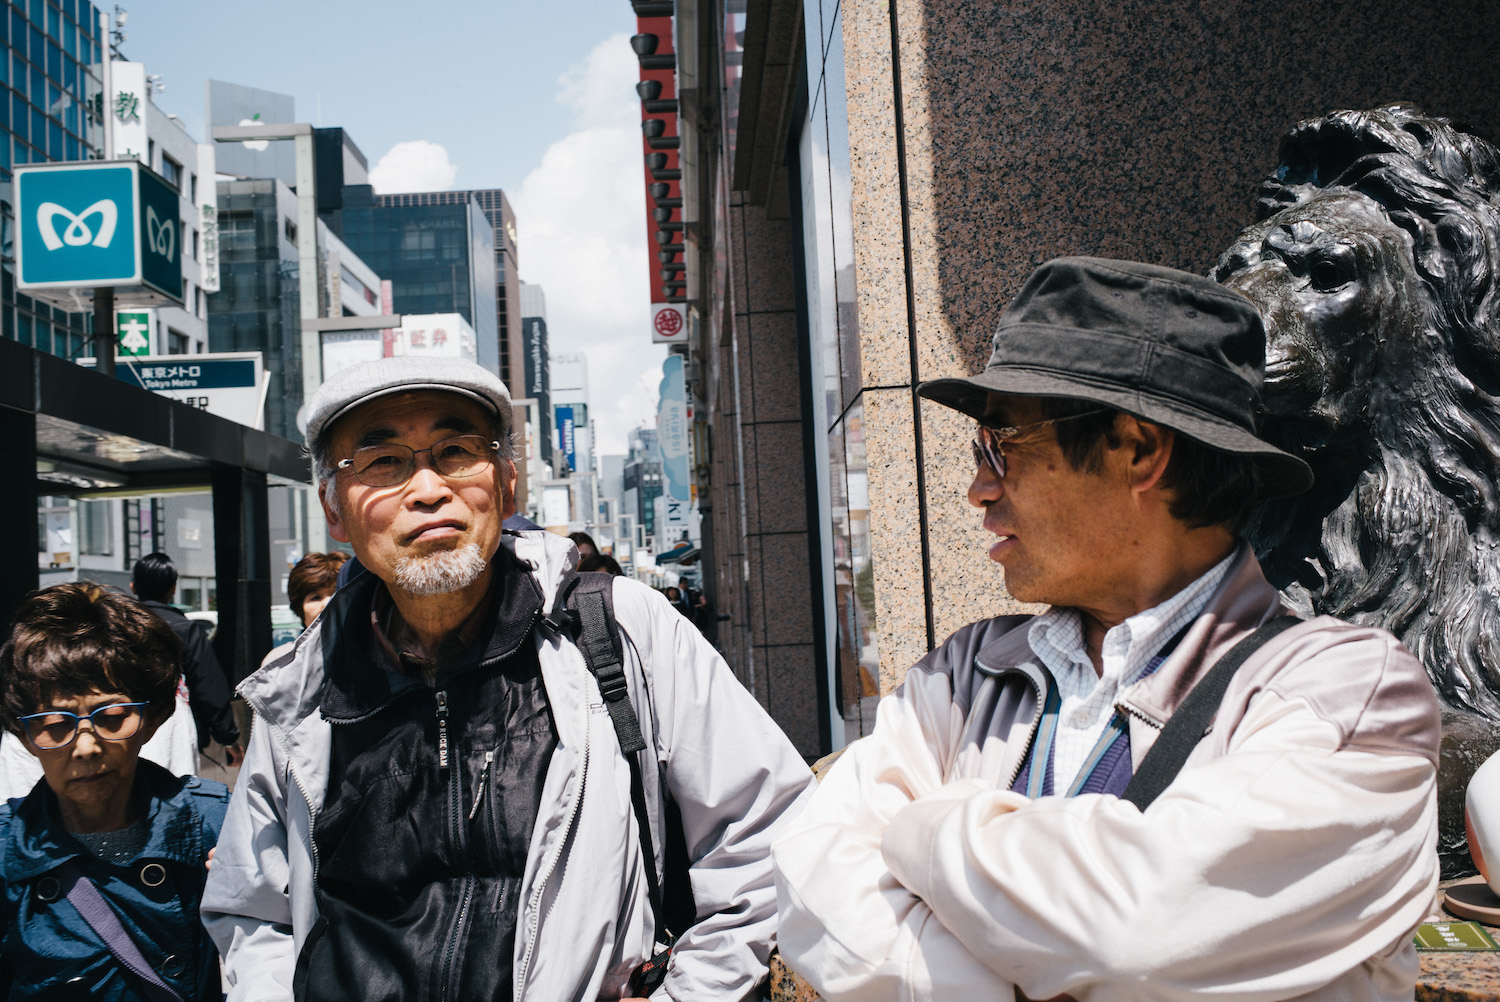 Street moments in Ginza.